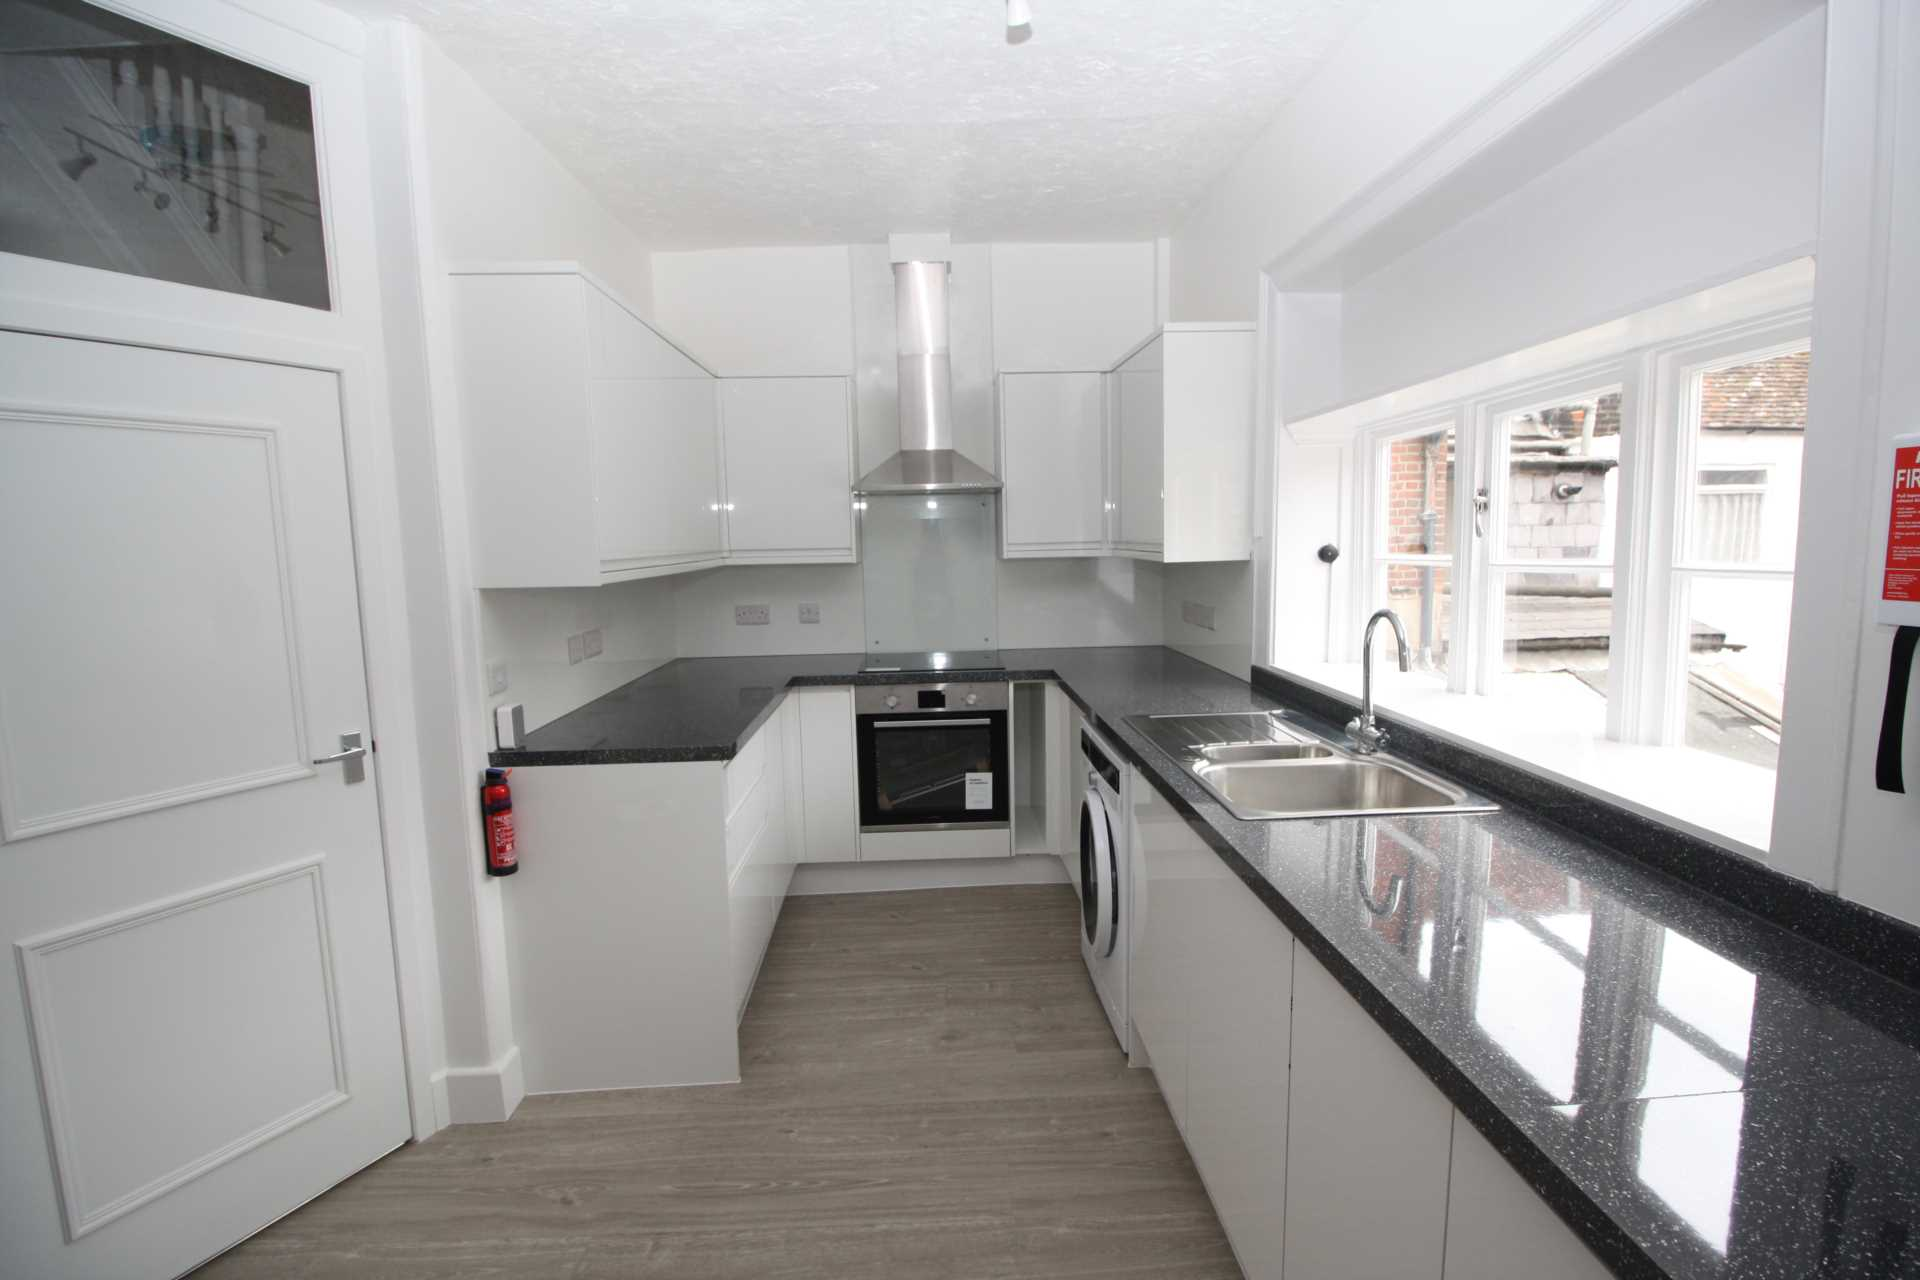 3 bed flat to rent in Market Place, Blandford Forum 0